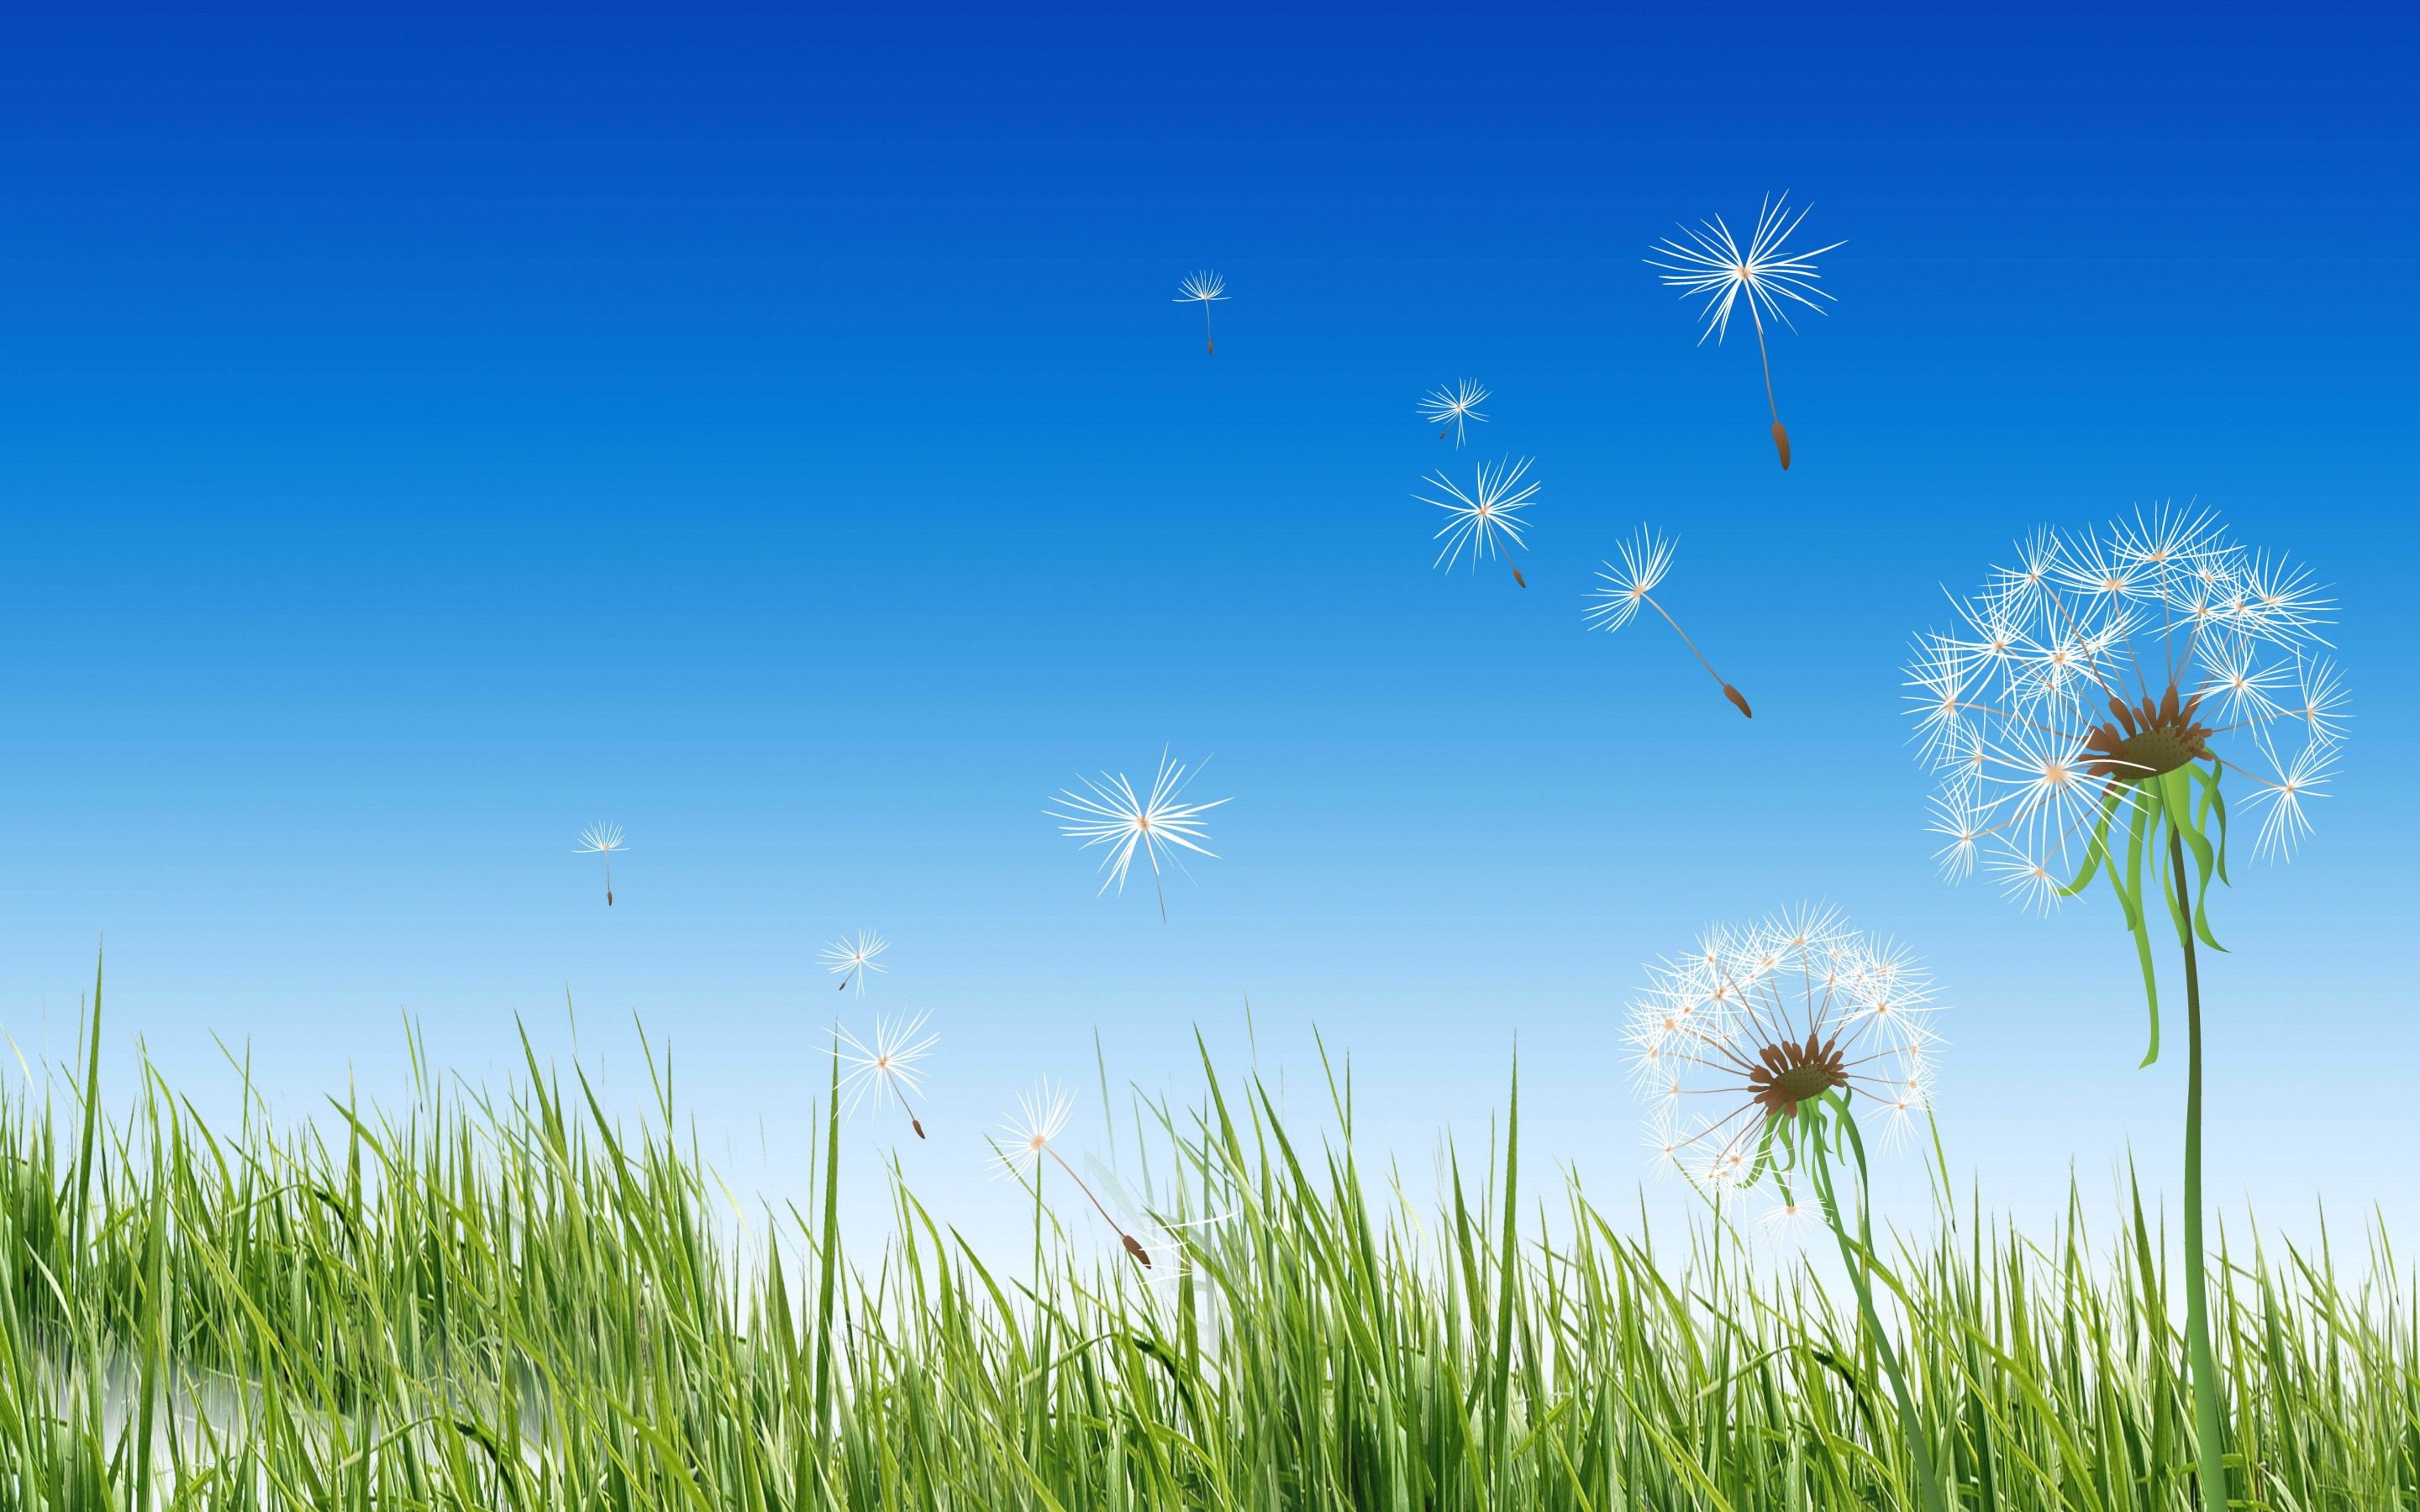 221 Dandelion HD Wallpapers | Backgrounds - Wallpaper Abyss - Page 3